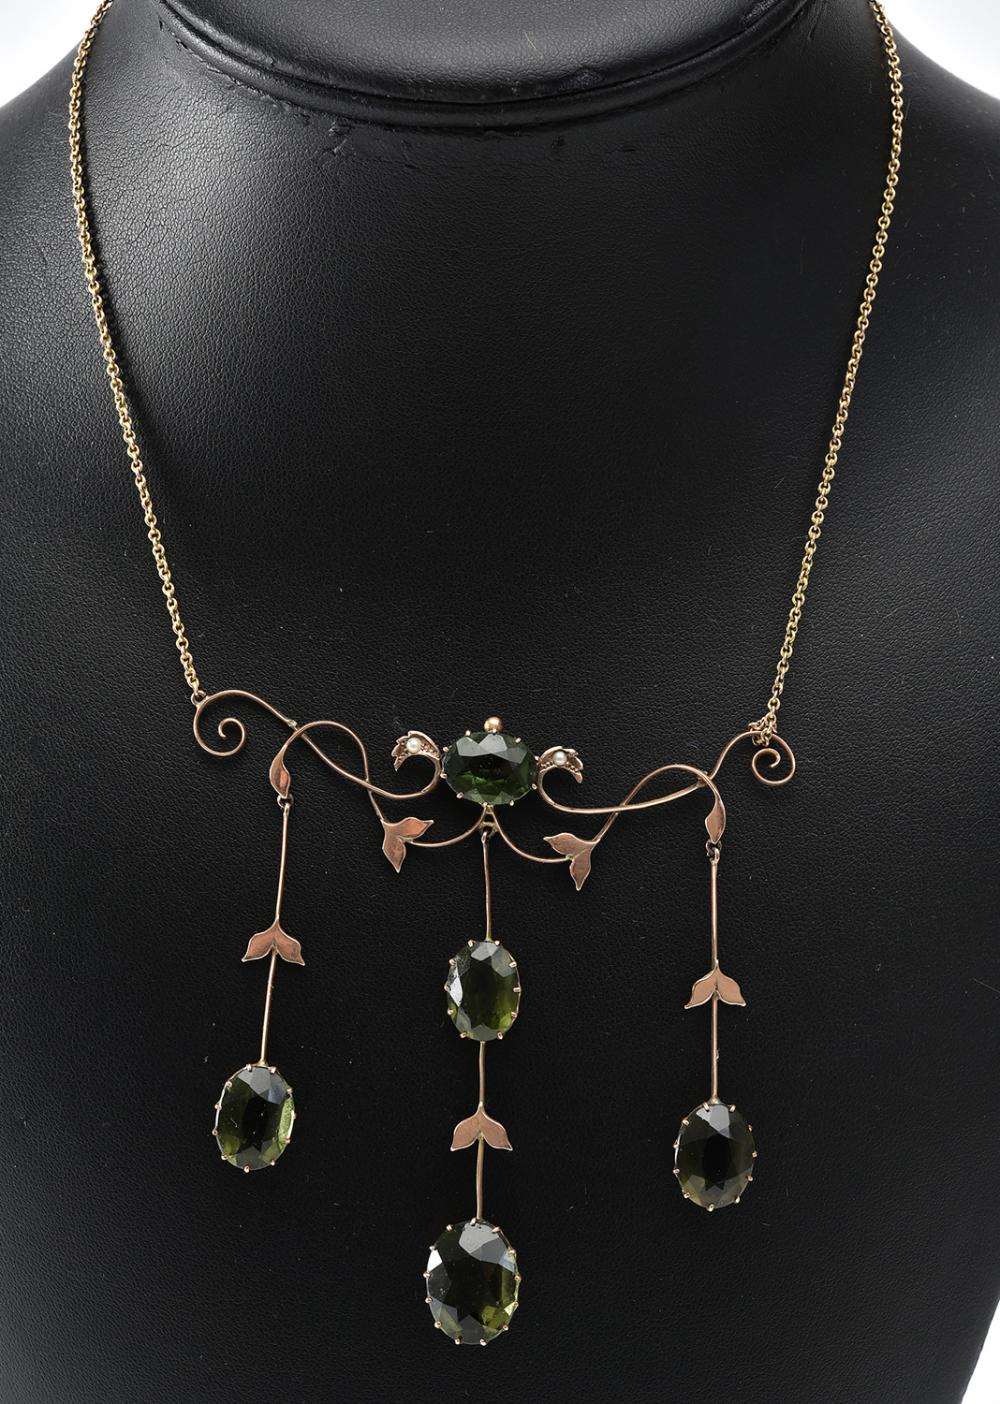 AN AUSTRALIAN EDWARDIAN PASTE SET NECKLACE IN 9CT GOLD, (A/F)